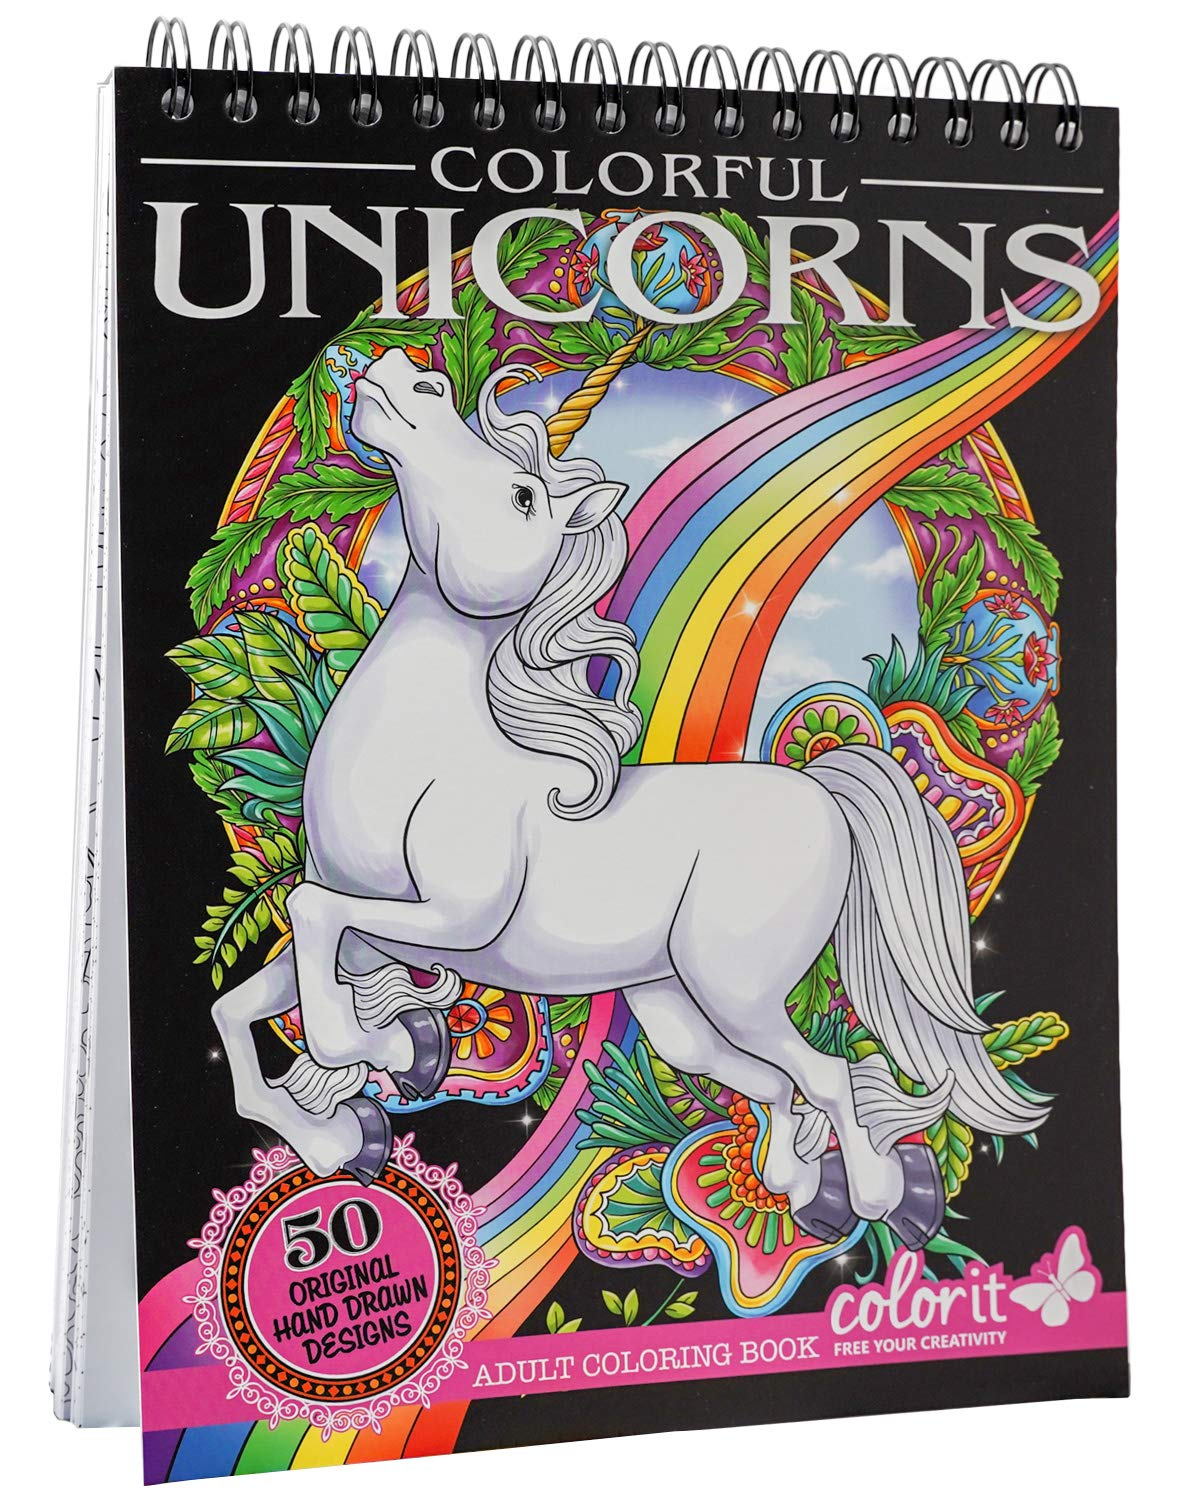 ColorIt Colorful Unicorns Adult Coloring Book - 50 Single-Sided Pages, Thick Smooth Paper, Lay Flat Hardback Covers, Spiral Bound, USA Printed, Hand Drawn Unicorn Coloring Pages by ColorIt